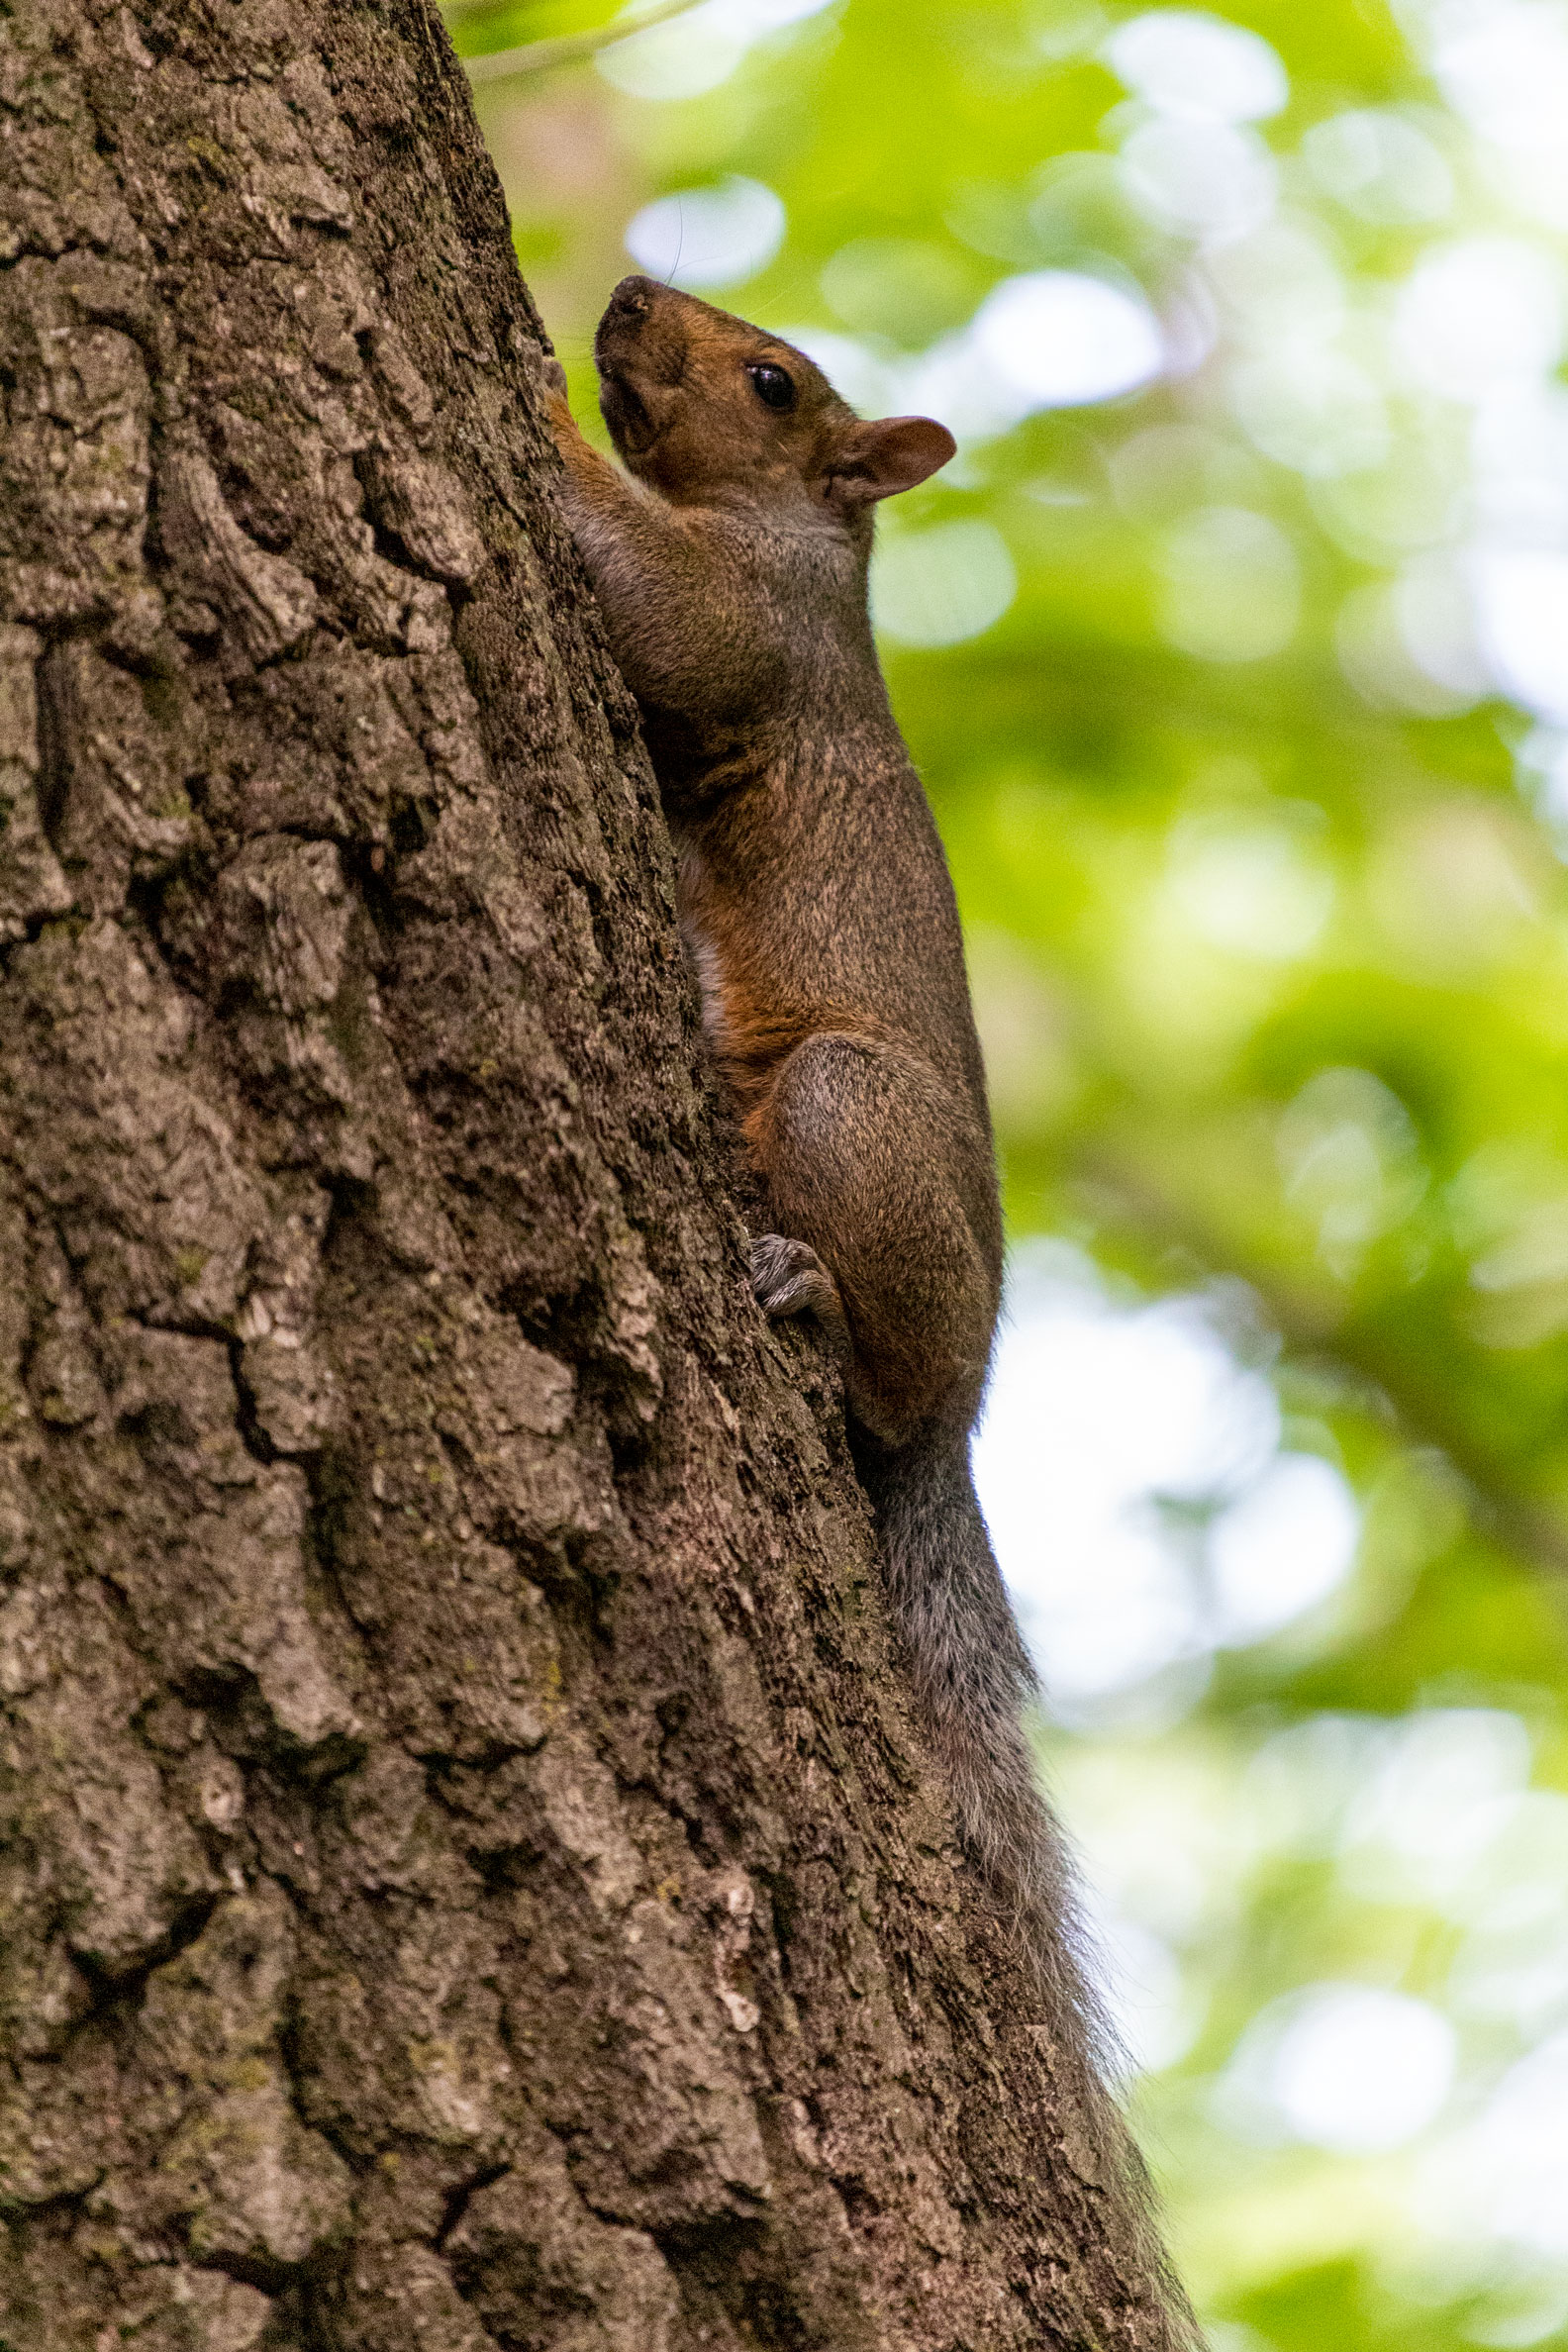 Squirrel clinging to the side of a tree looking thoroughly displeased